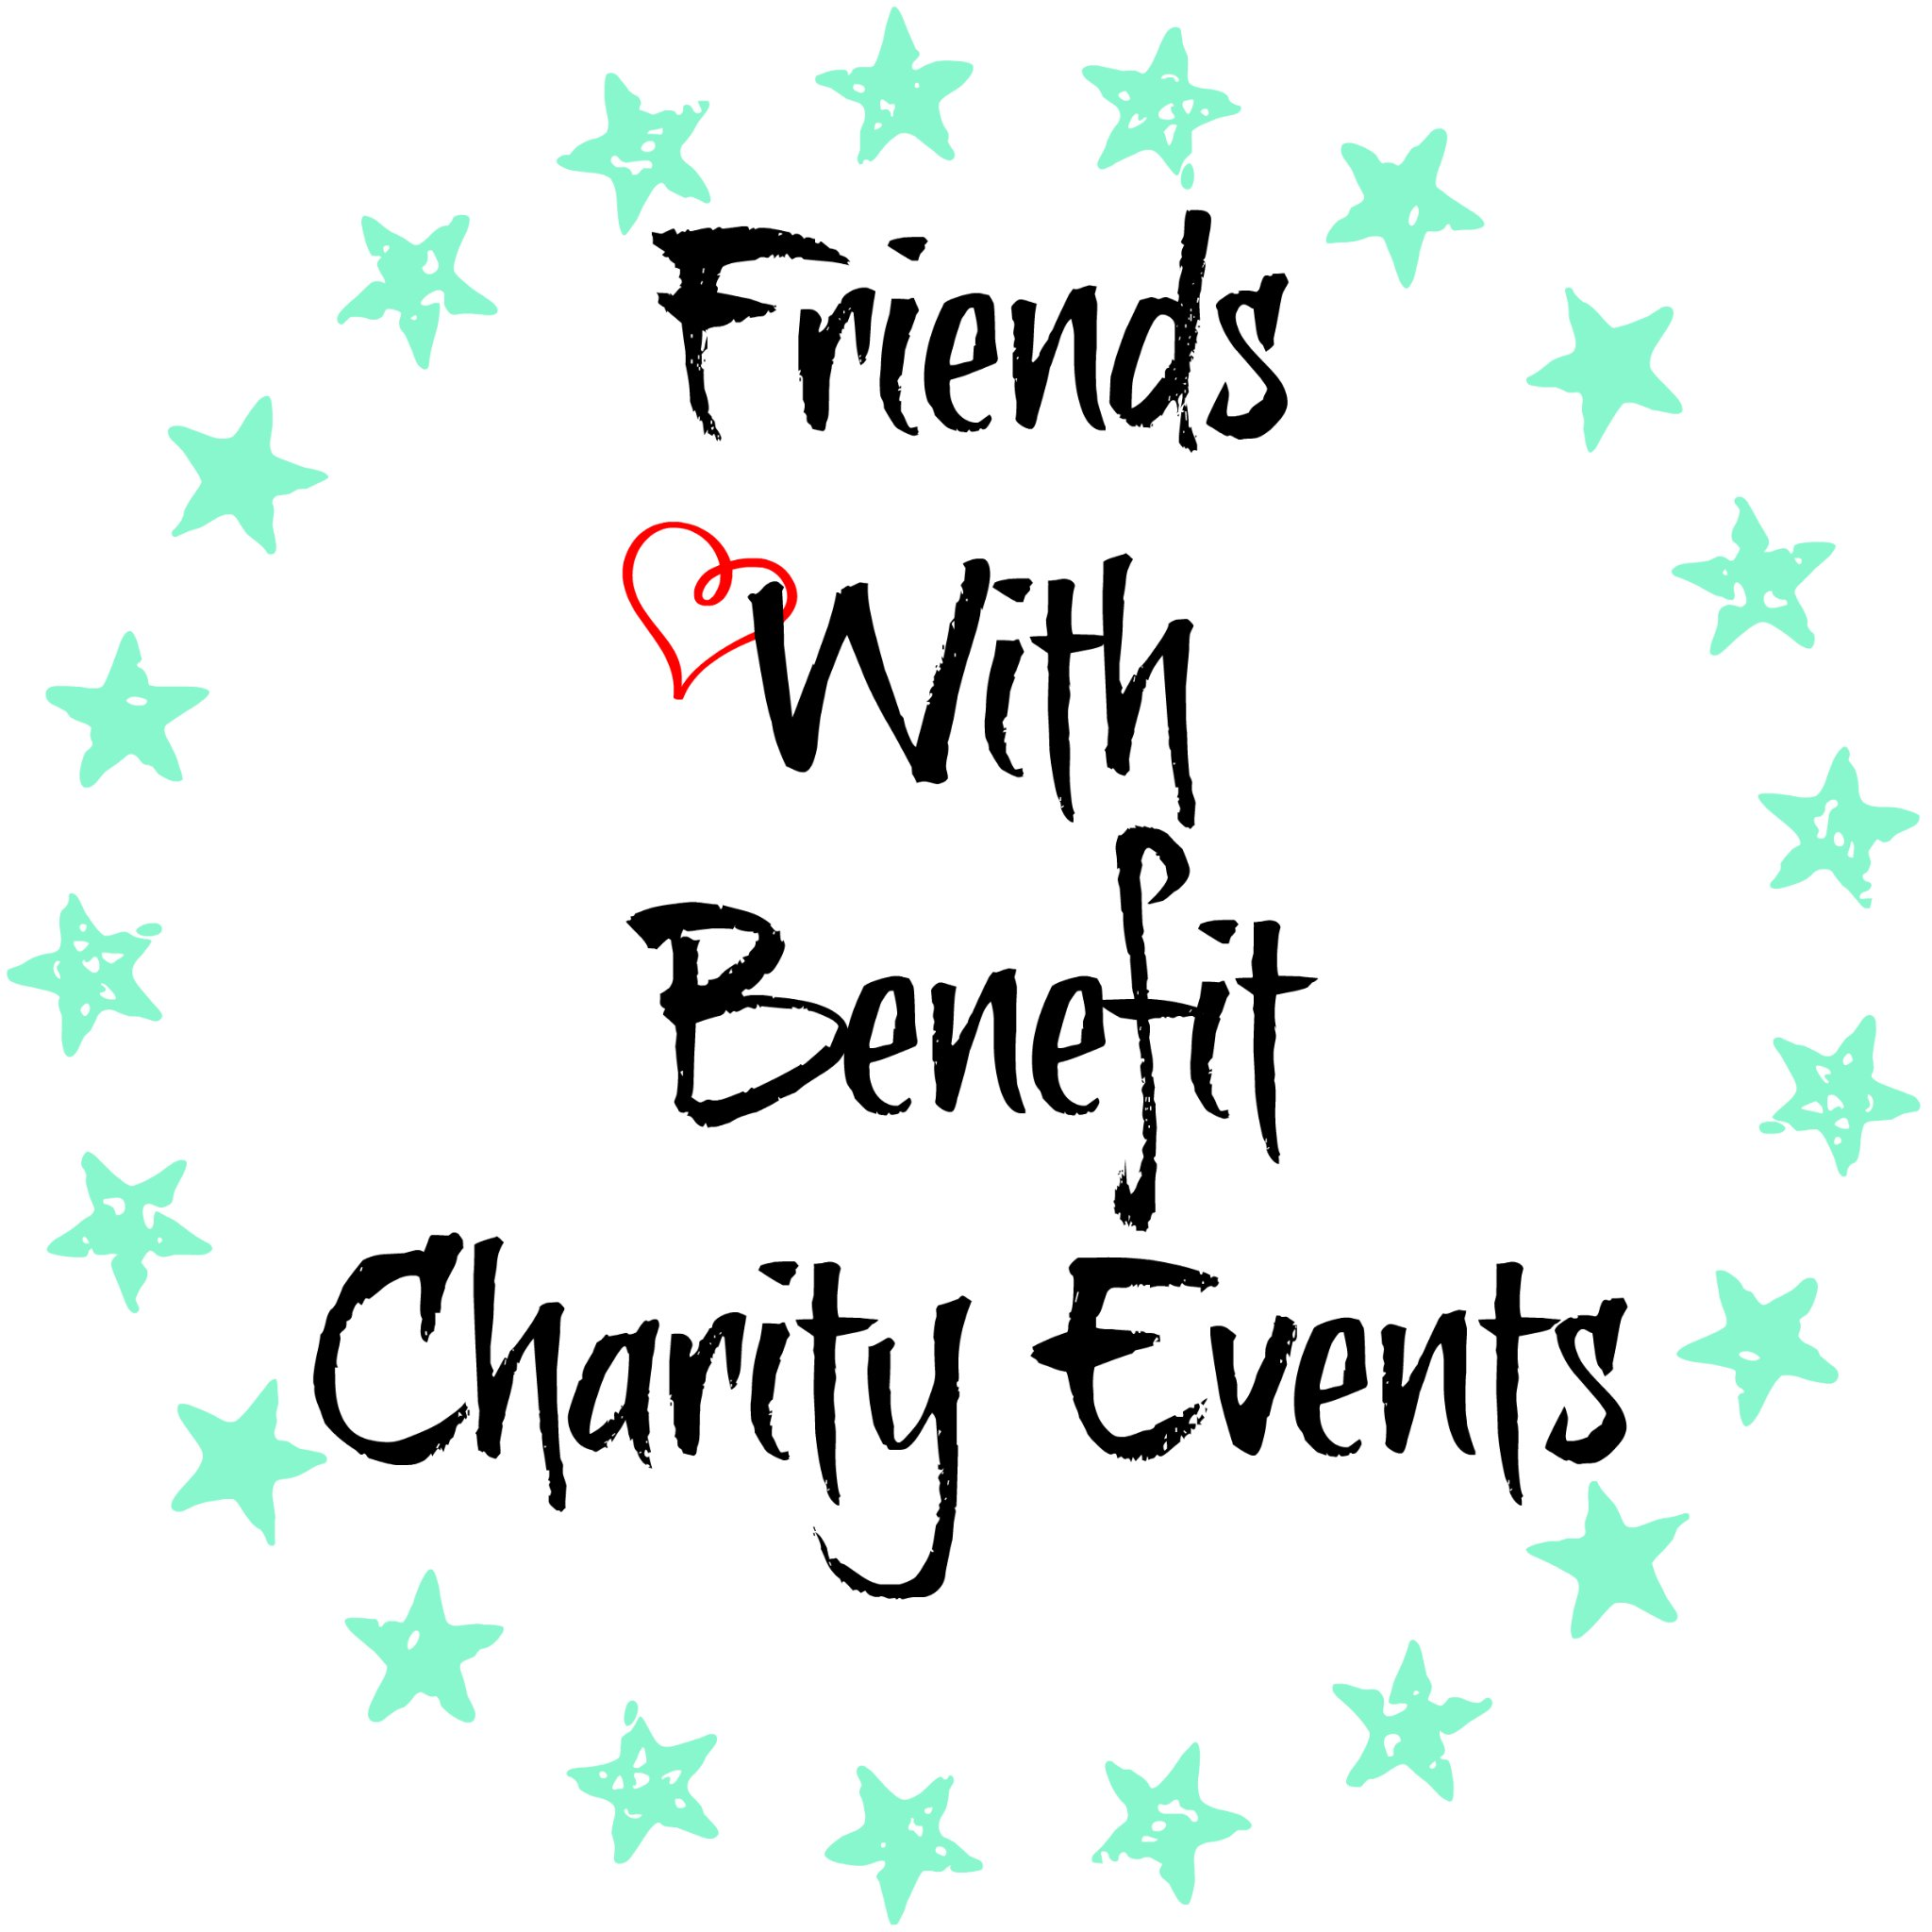 FWB Charity Events (@FWBevents) | Twitter